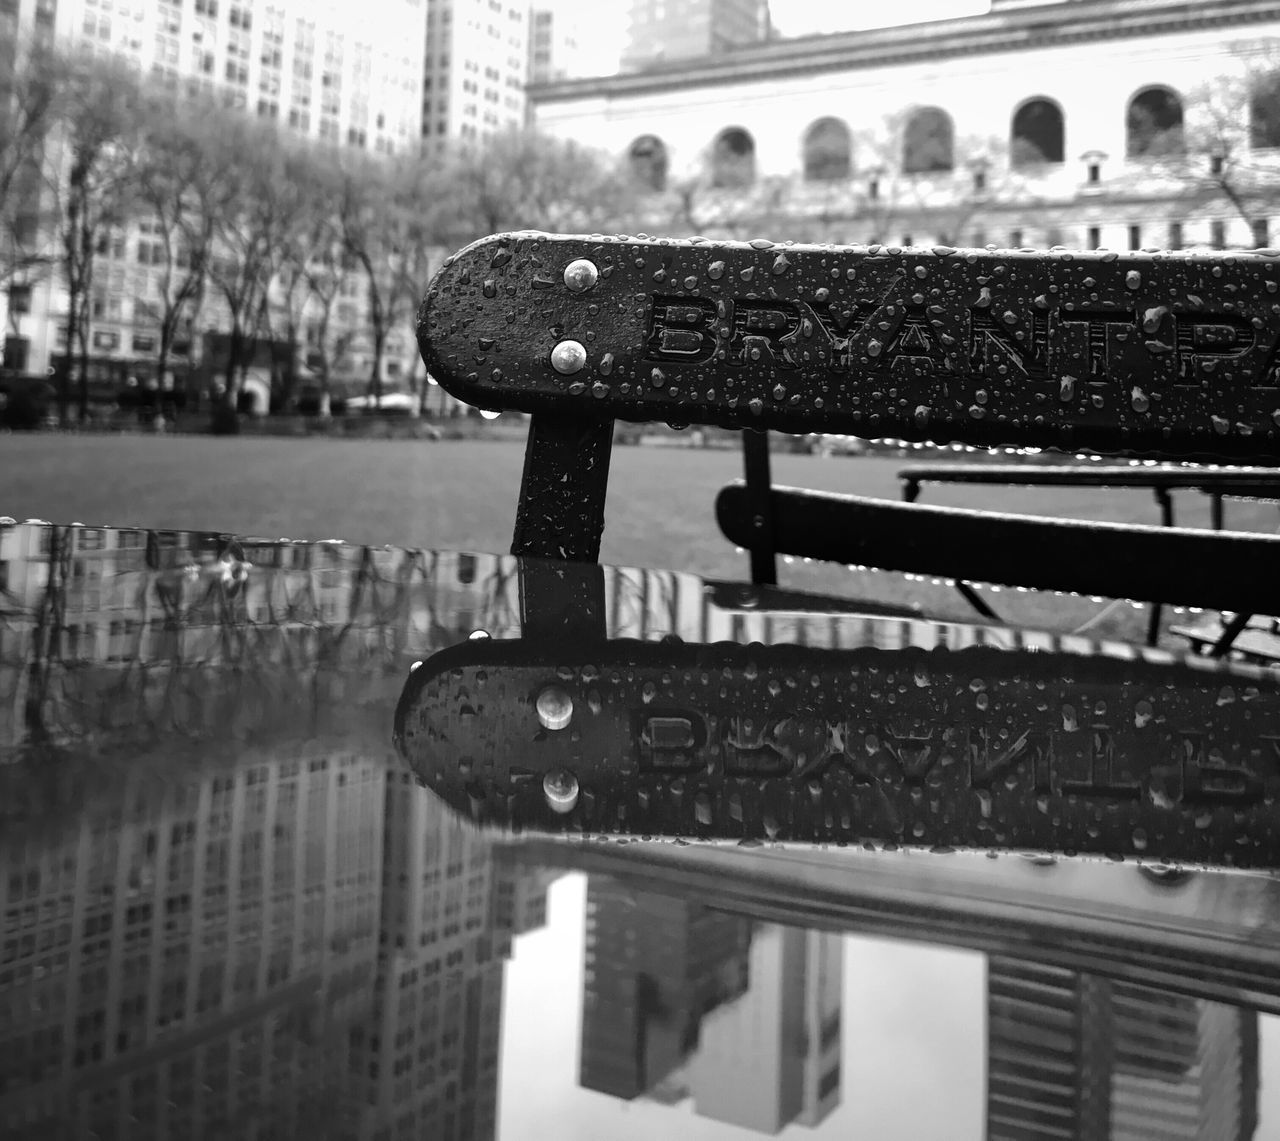 Water Building Exterior Day No People Outdoors City Close-up TheMinimals (less Edit Juxt Photography) Puddleography Blackandwhite Rainy Season Reflection